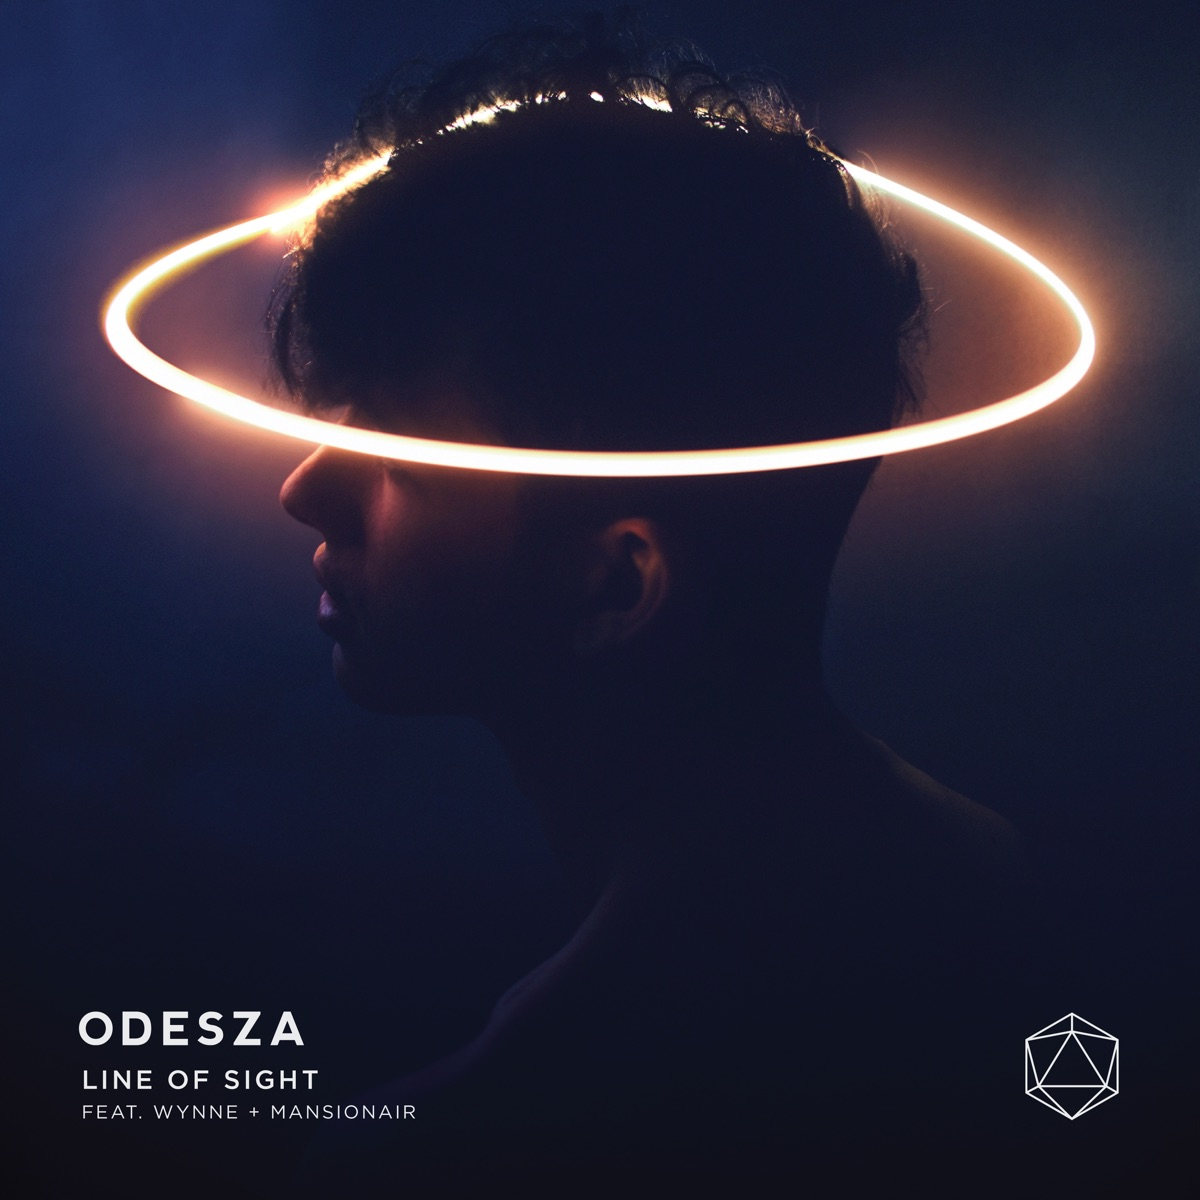 Line of Sight feat WYNNE  Mansionair - Single ODESZA CD cover